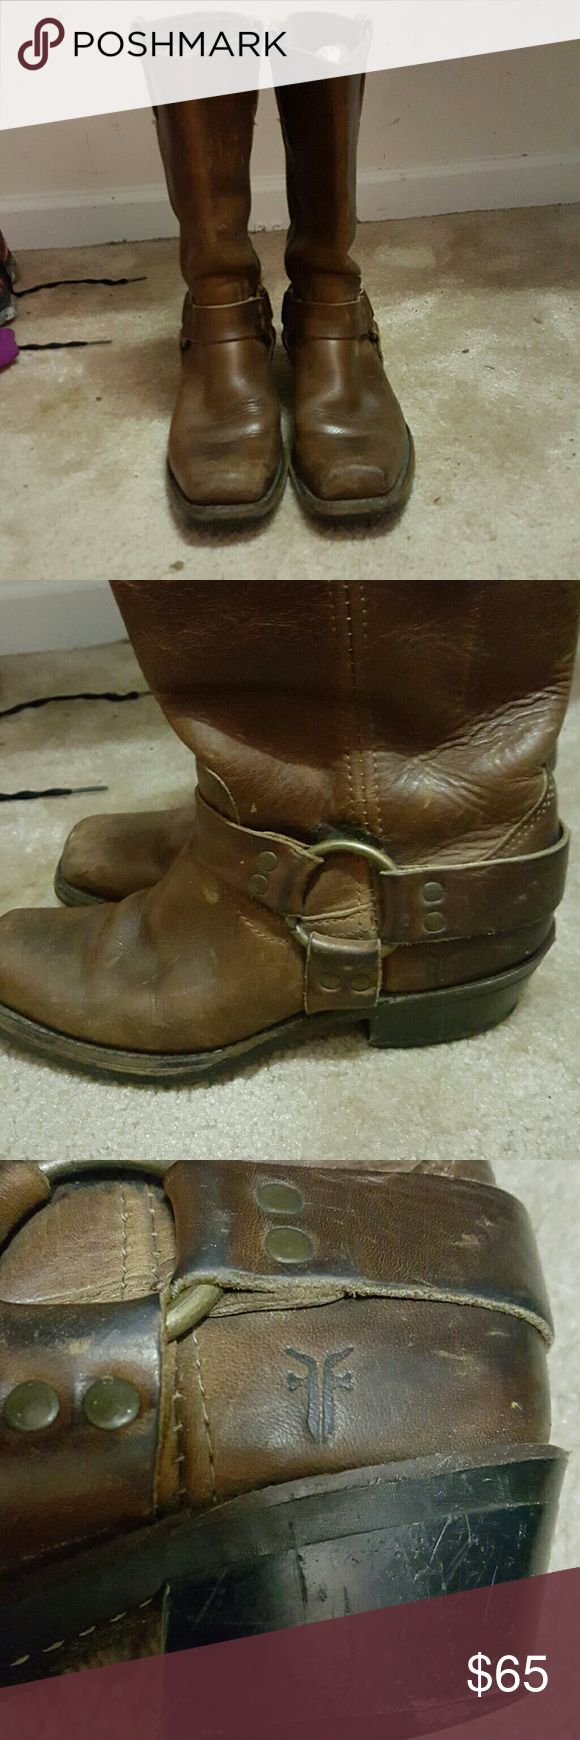 Frye harness boots Frye harness boots. Well loved. I cant fit my calf in them anymore or they would be staying with me!  Scuffs on heel. Leather needs a good conditioning. Frye Shoes Combat & Moto Boots